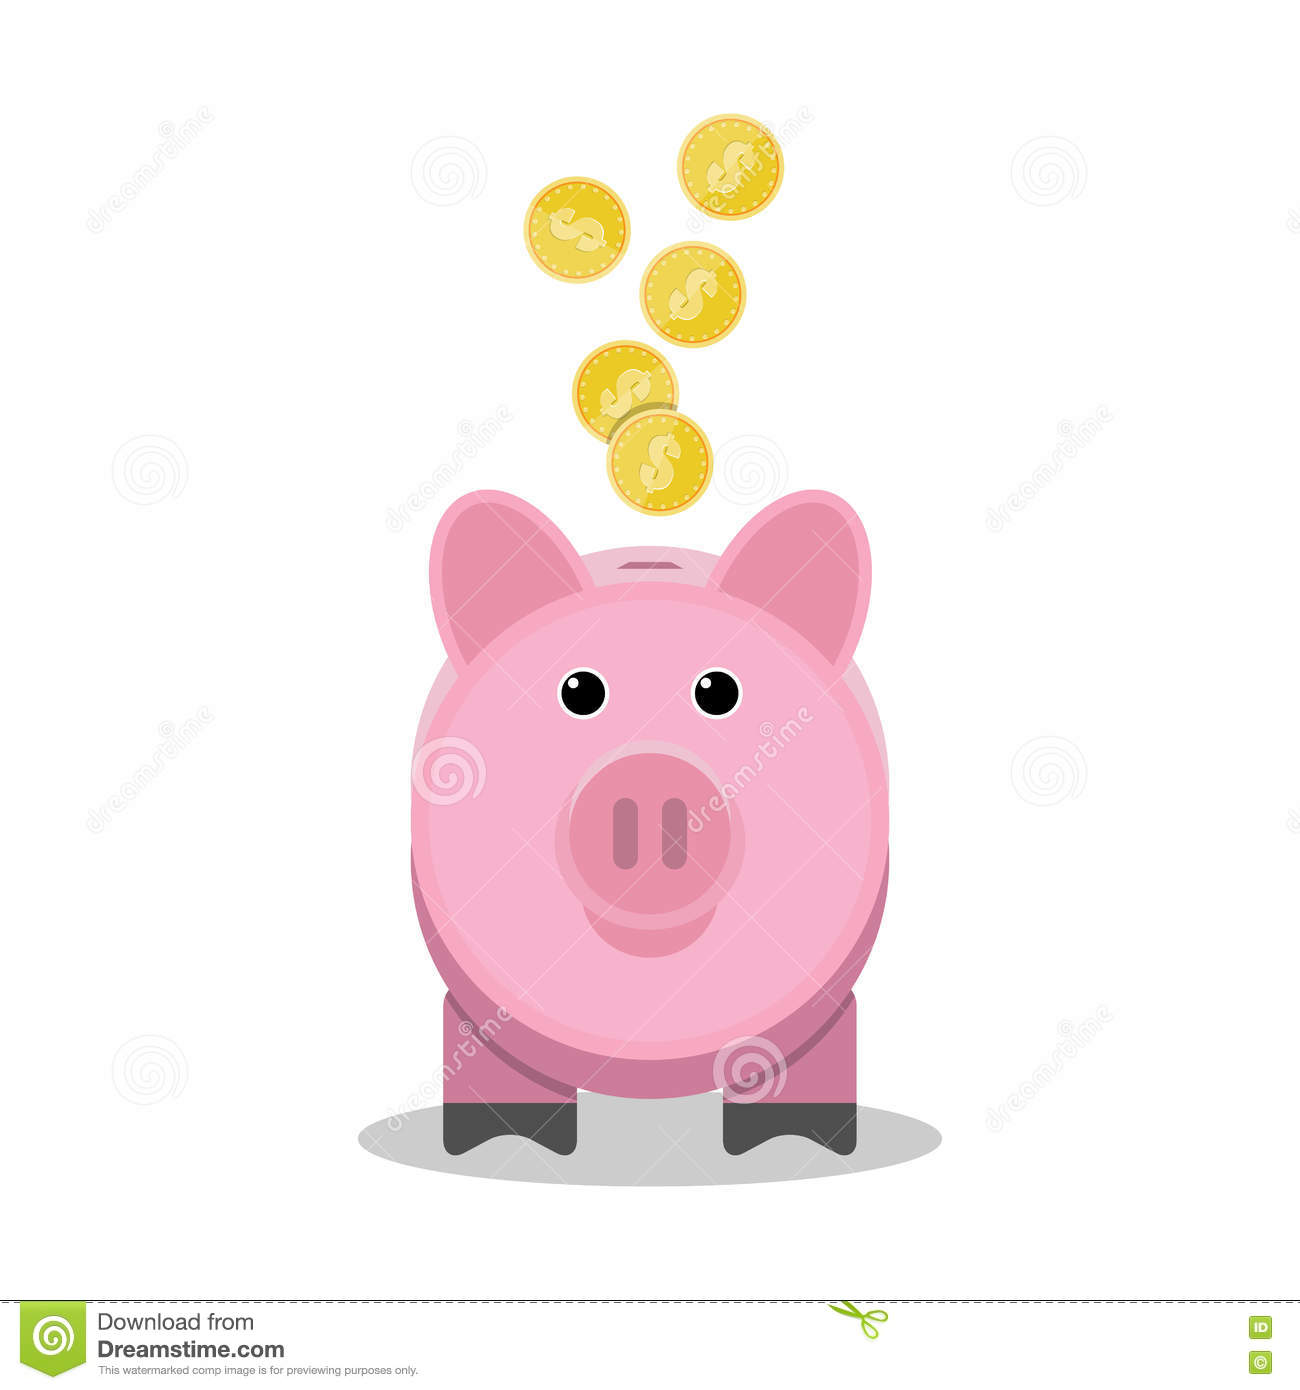 Coin Piggy Bank Toy Piggy Bank With Gold Coins Toy Pink Pig Money Box Stock